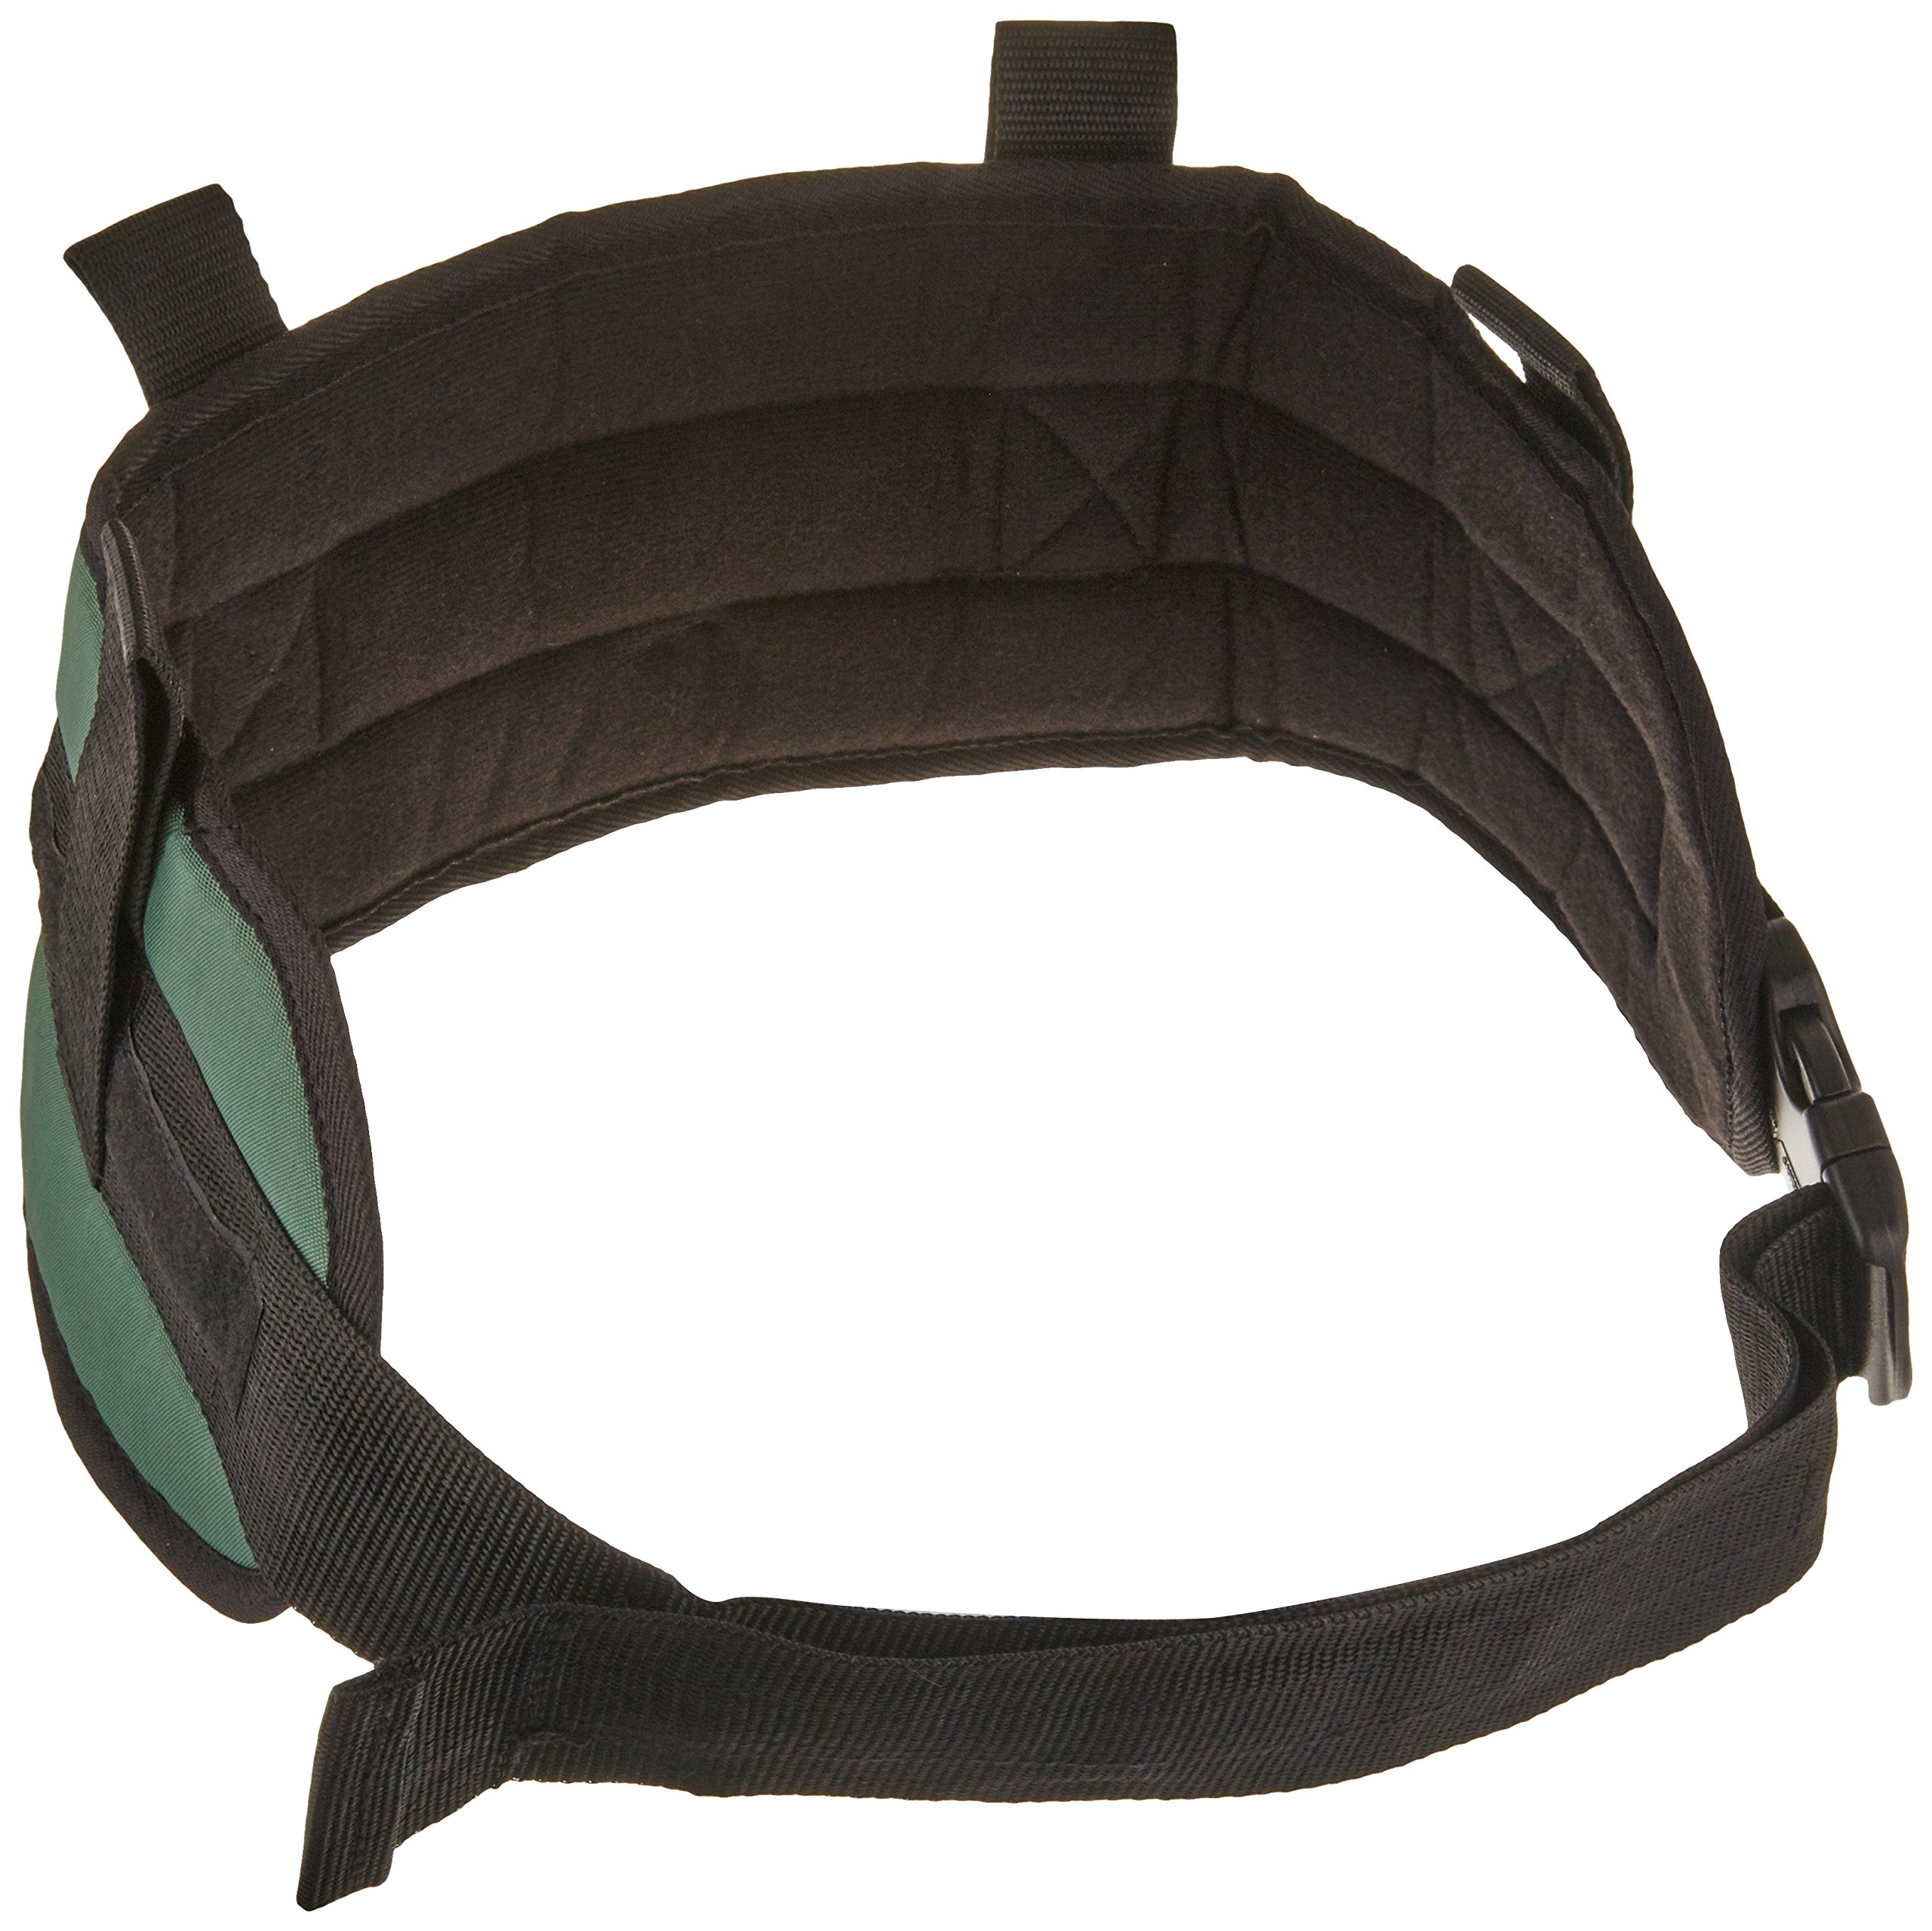 Sammons Preston Padded Gait Belt with Handles, 5.5'' Wide Transfer Belt with 4 Loops and Quick Release Buckle, Handled Limited Mobility Aid Belt for Patient Care, Green, Medium Belt Fits 28''-48'' Waist